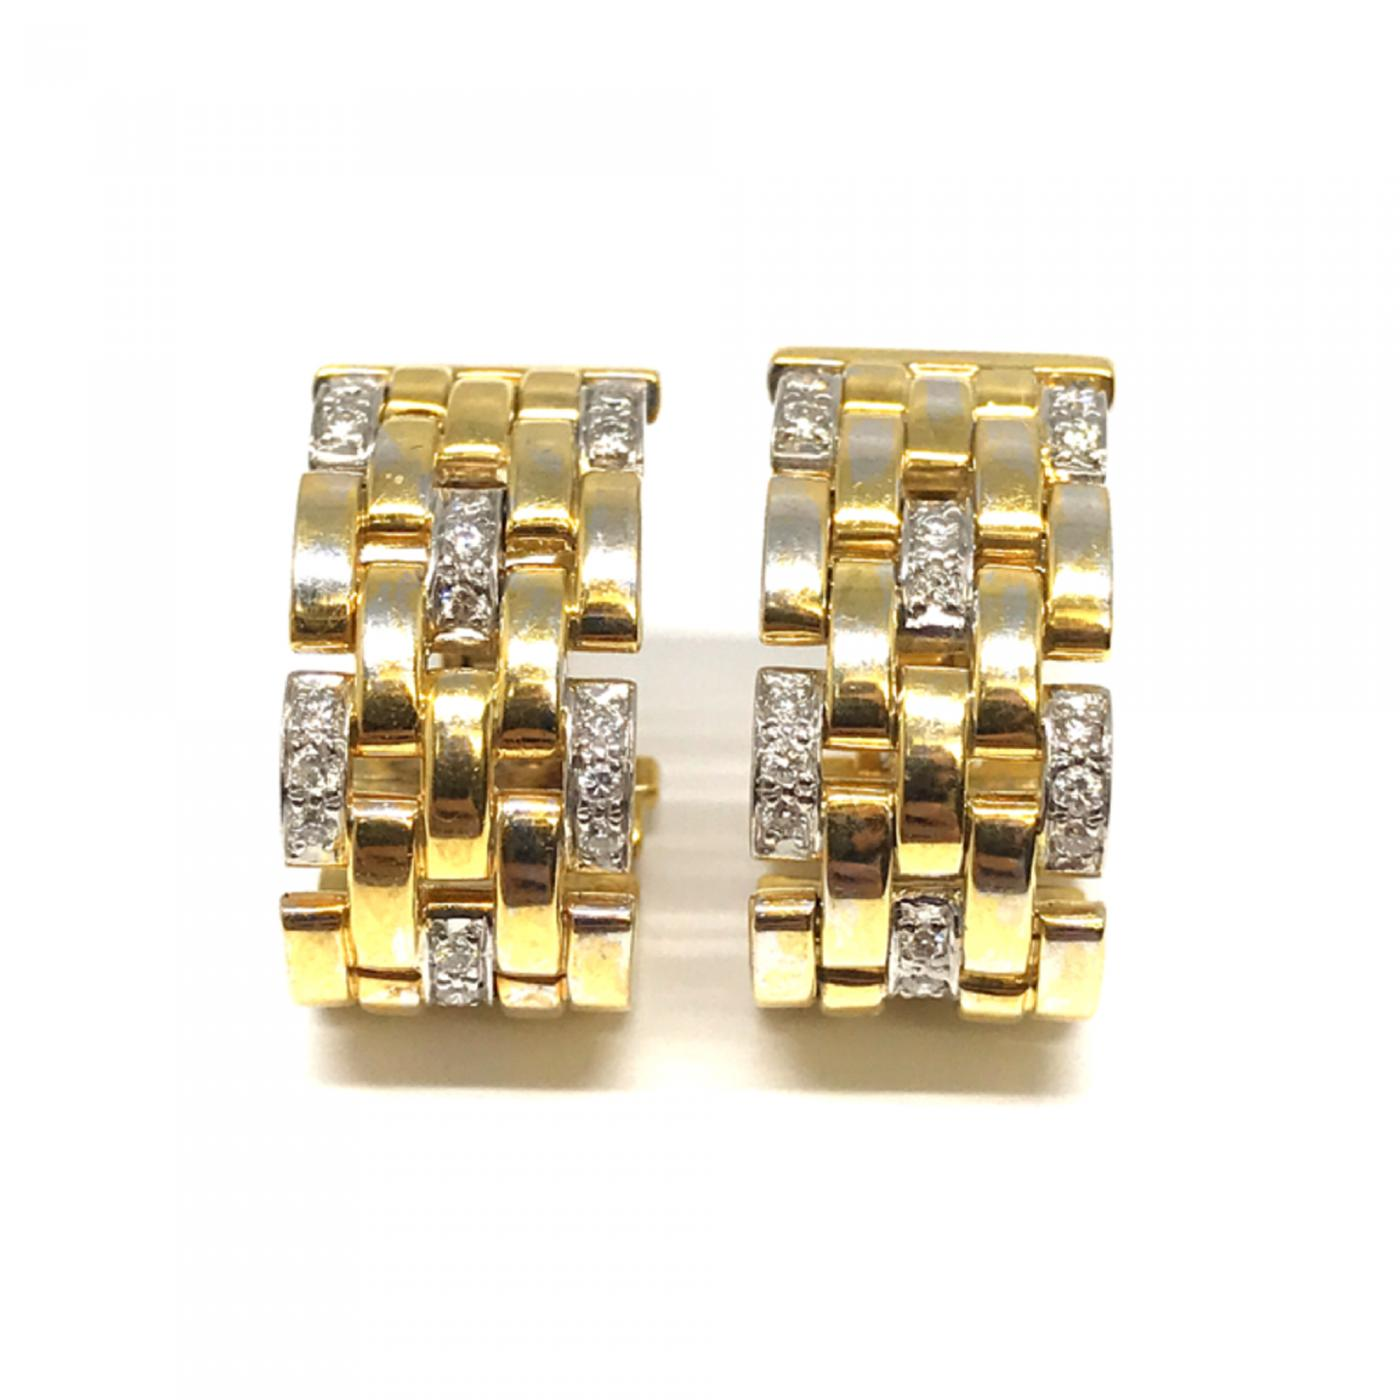 2c24f9be688a7 Cartier - Cartier Maillon Panthere Clip On Earrings